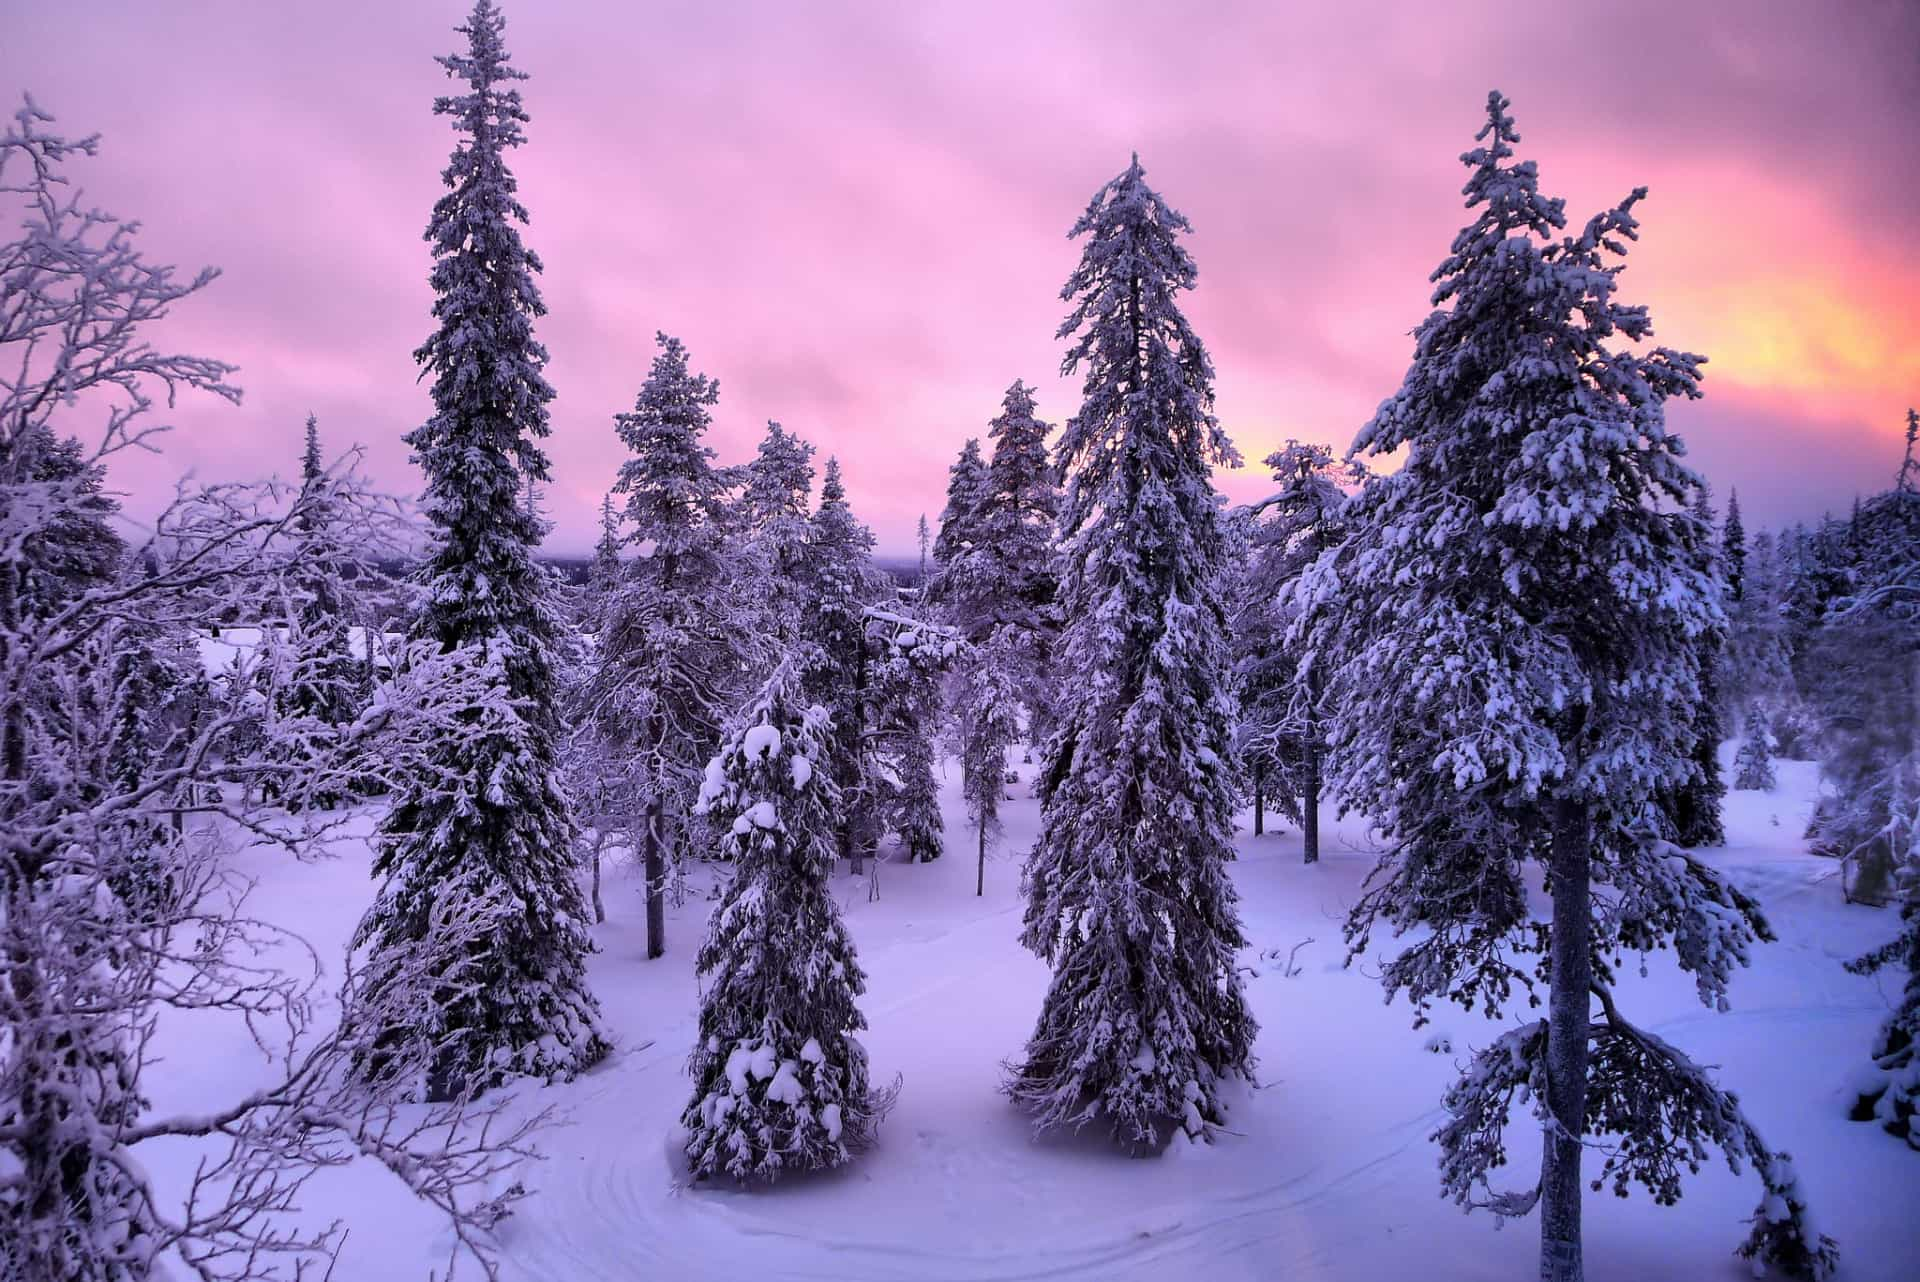 Let's go to Lapland, a winter wonderland!